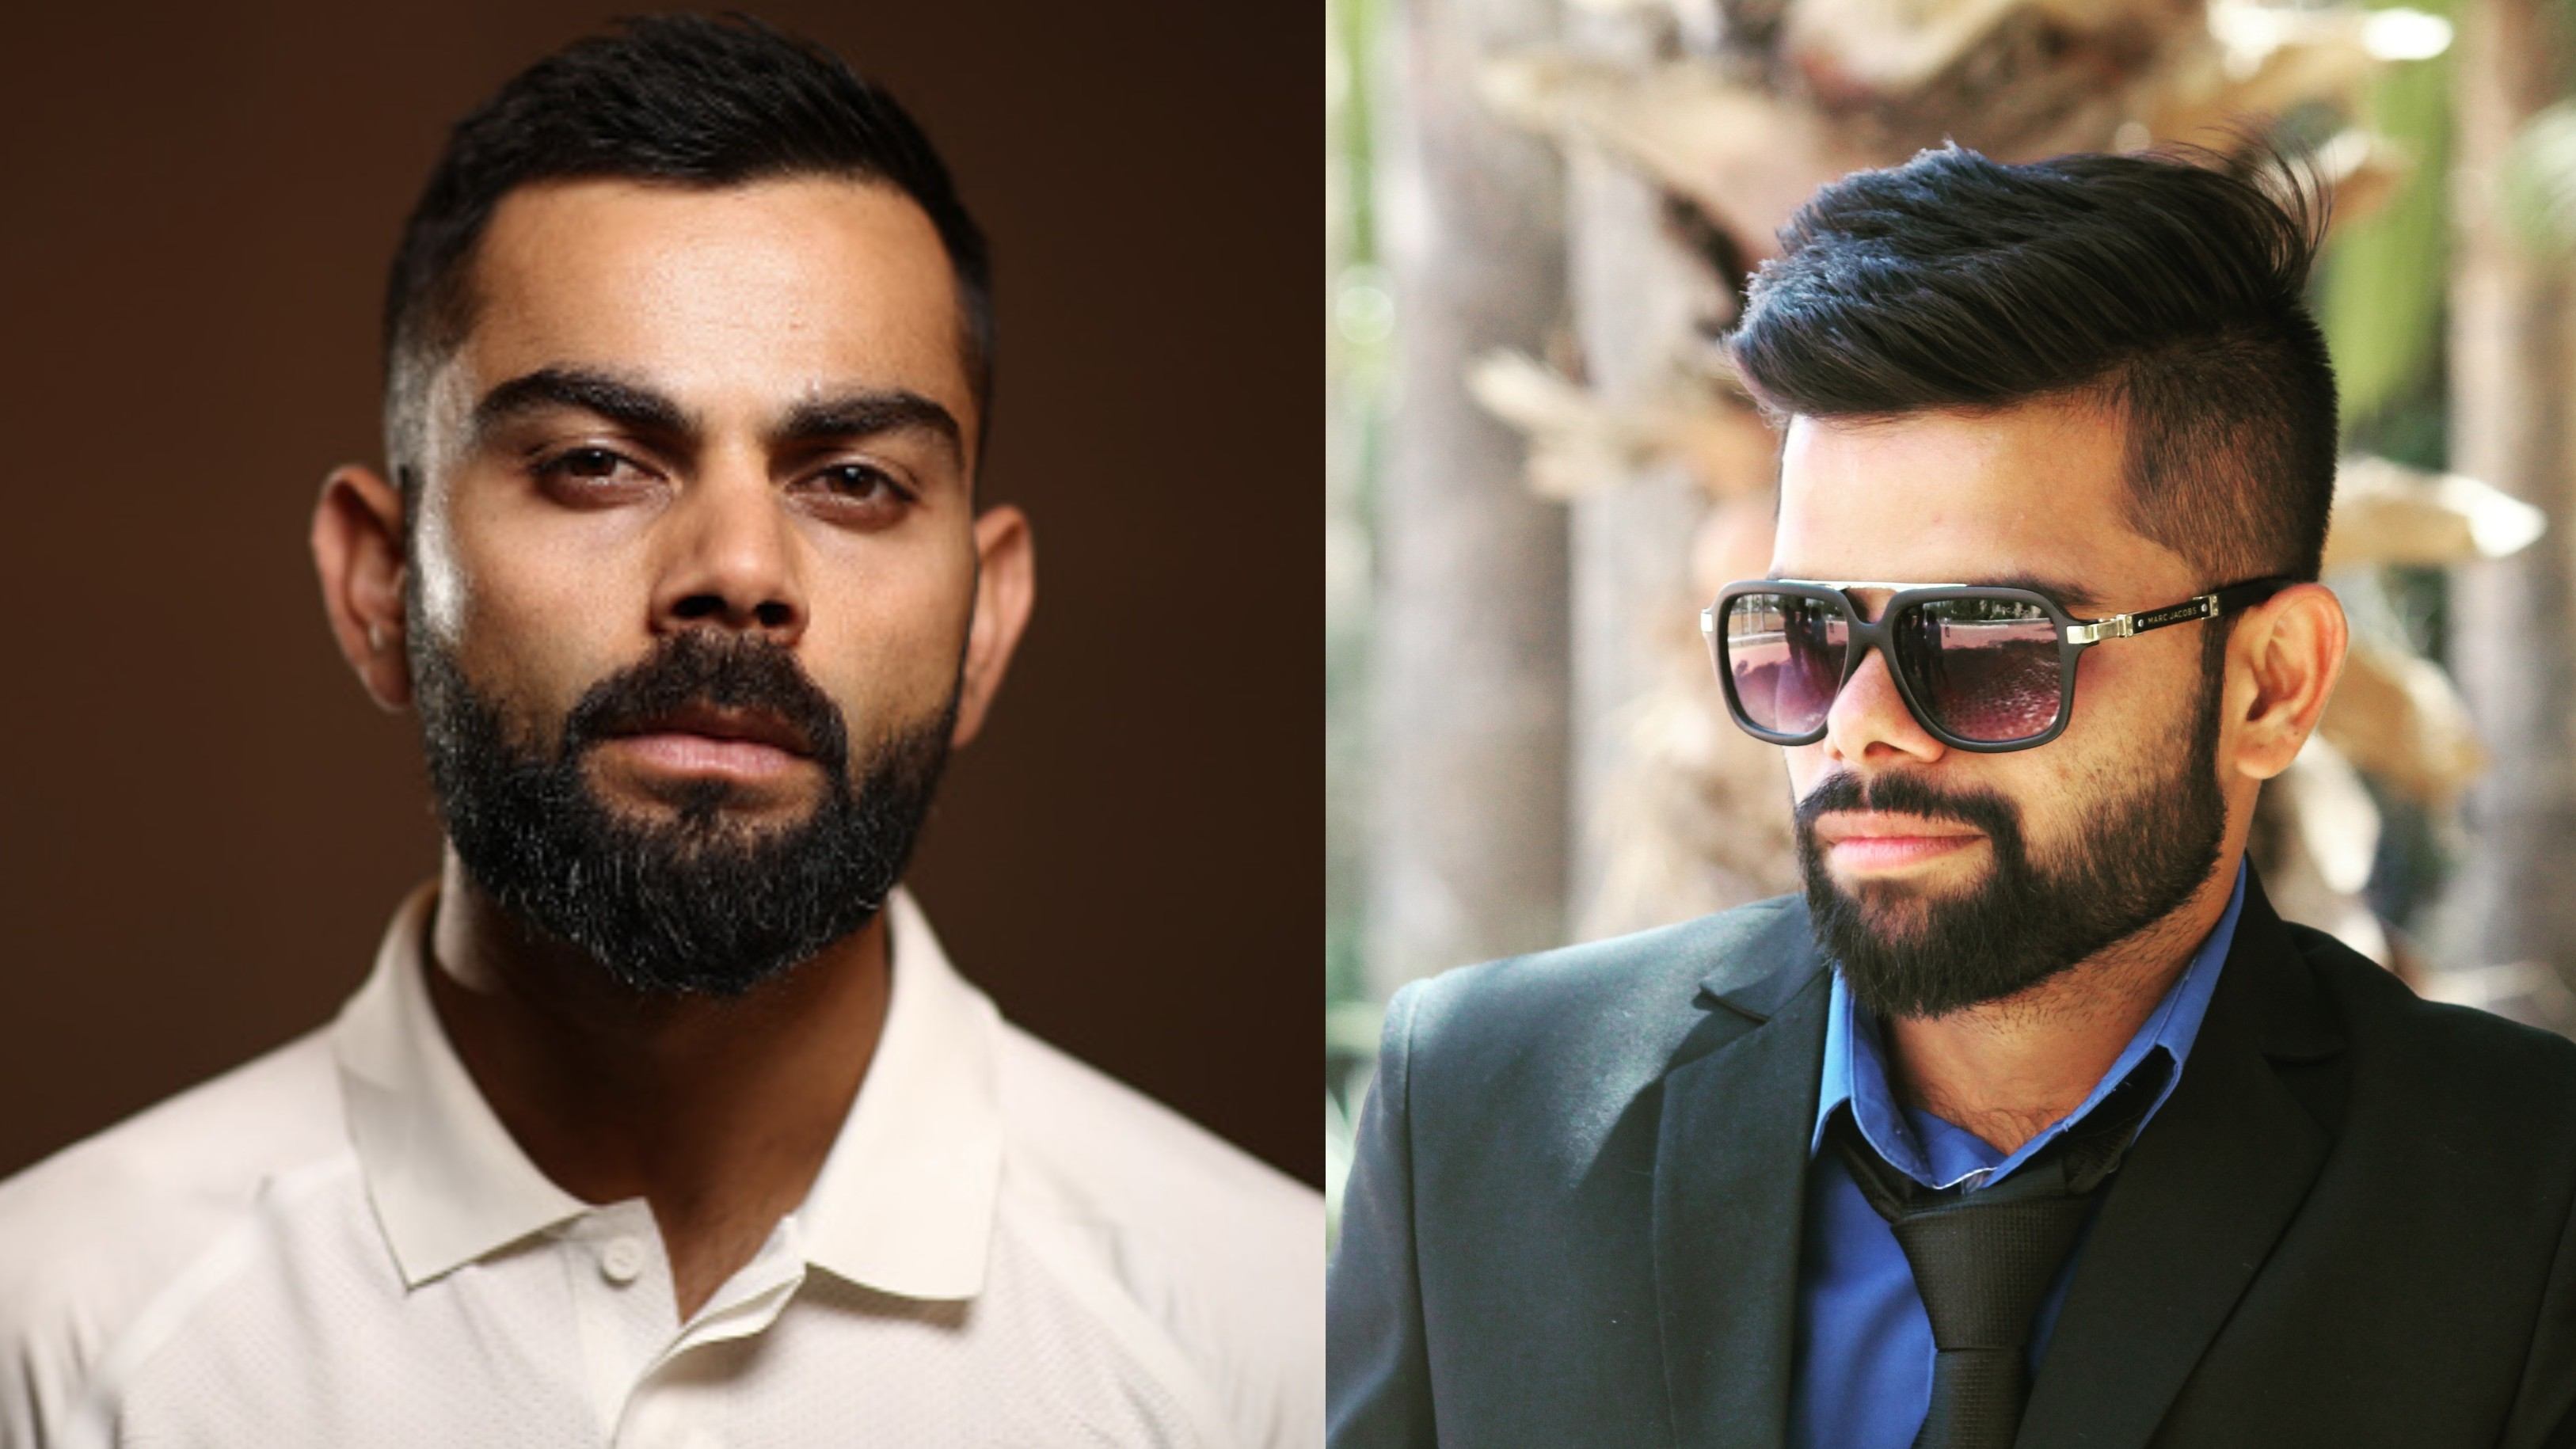 Meet Virat Kohli's lookalike Saurabh Gade who is enjoying fame due to his looks